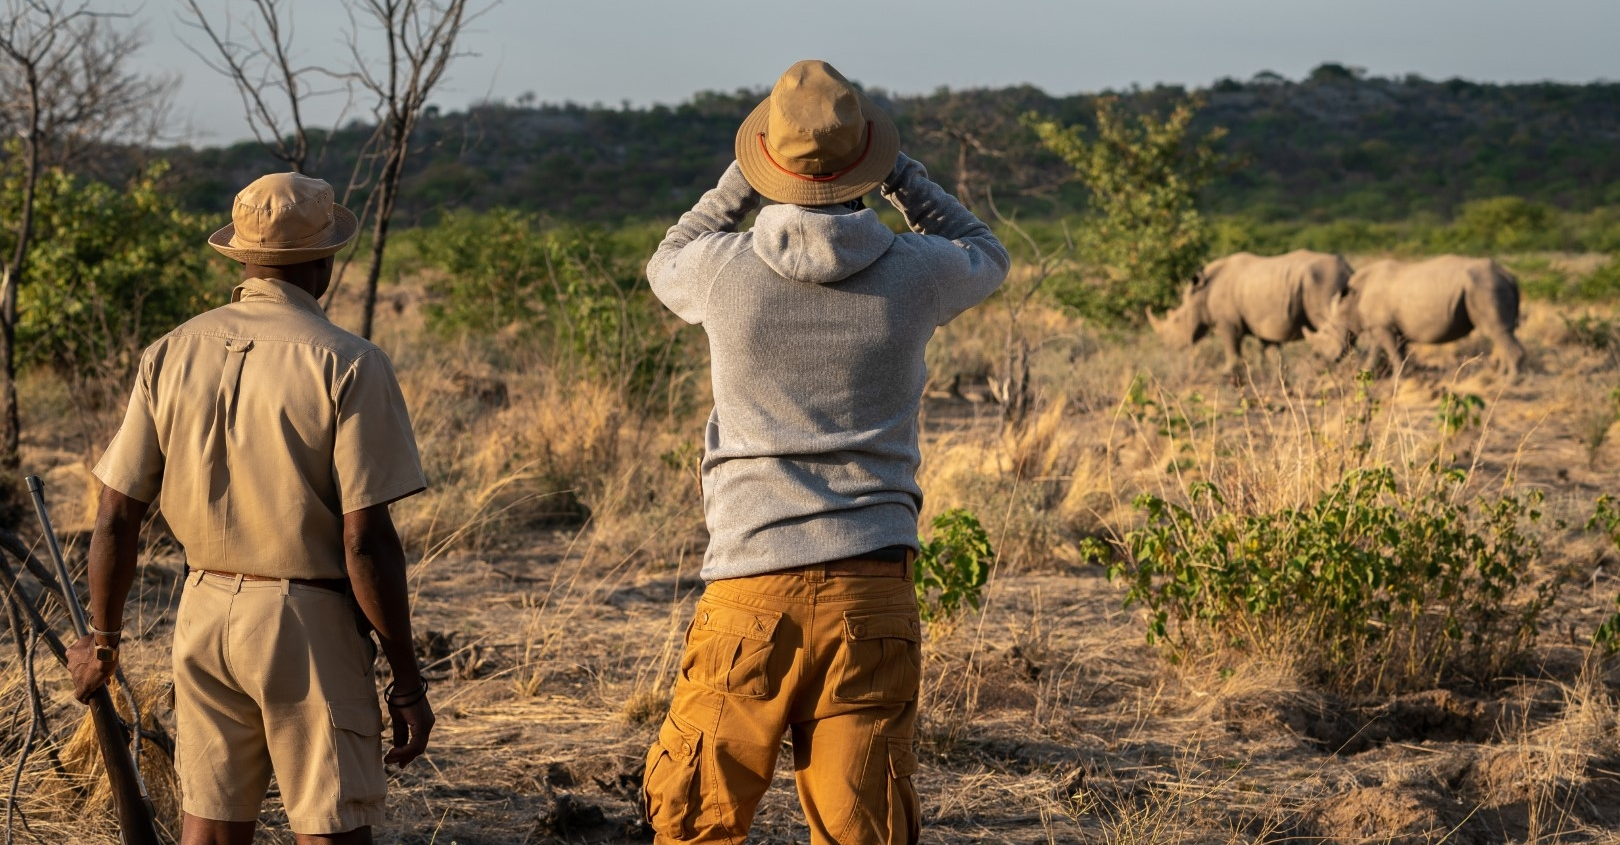 Guide with a gun as a traveler watches rhinoceros